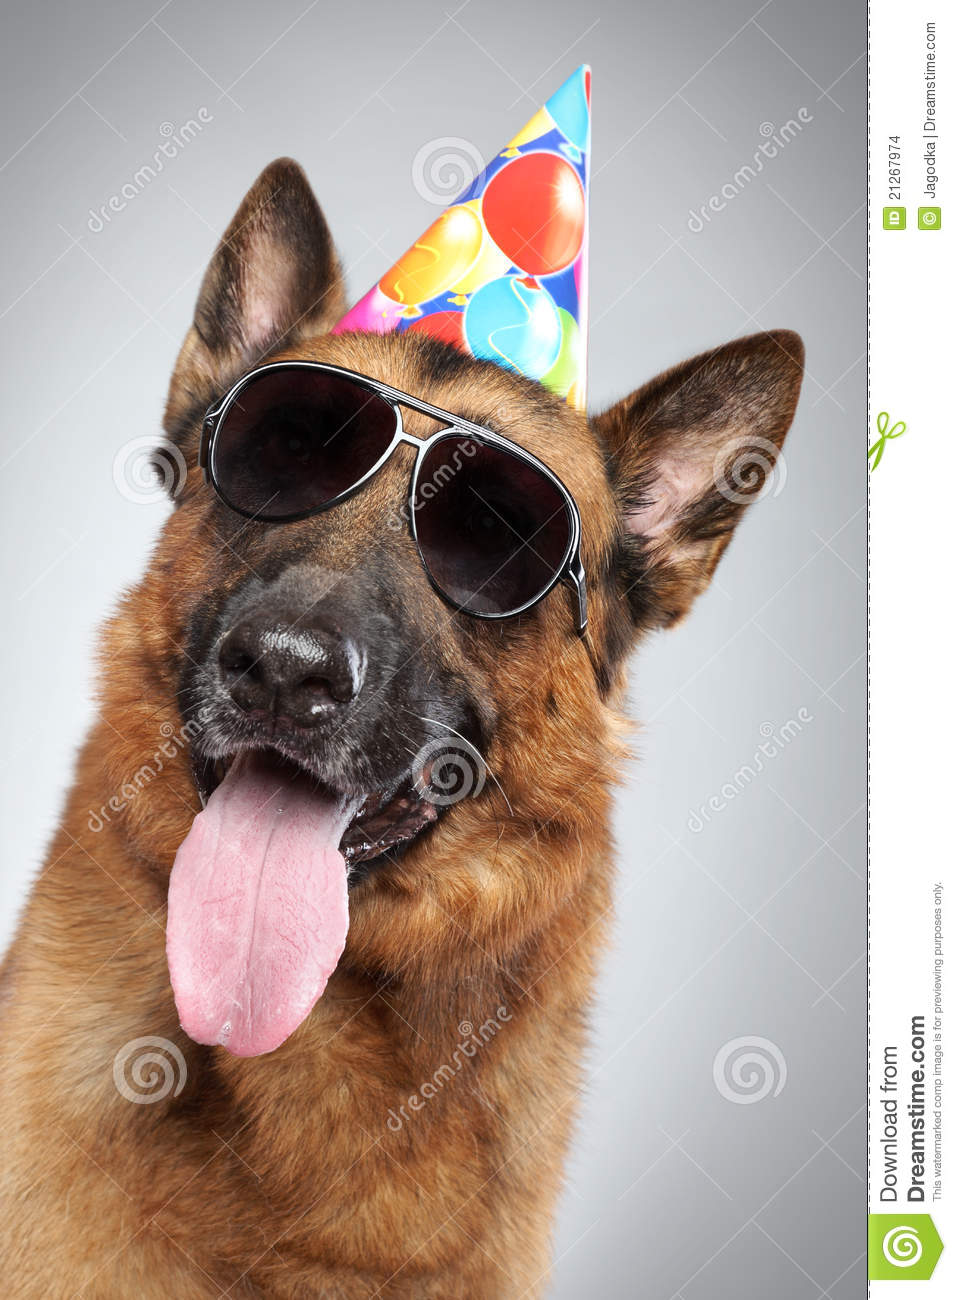 German Shepherd In Cone And Dark Sunglasses Stock Images - Image ...